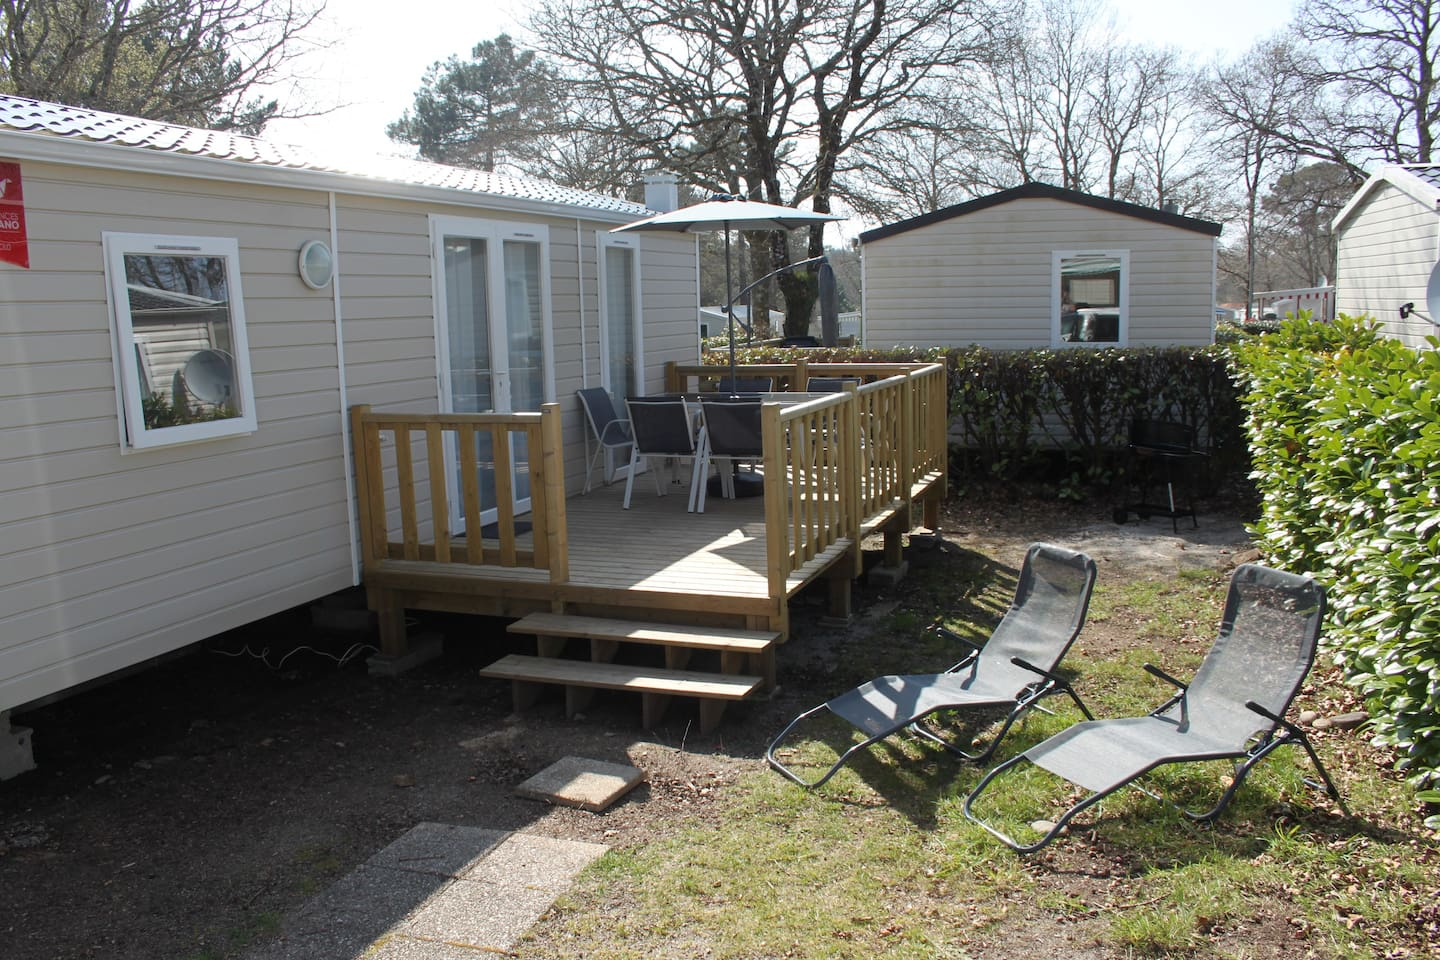 Mobilhome 4-6 places, terrasse, barbecue